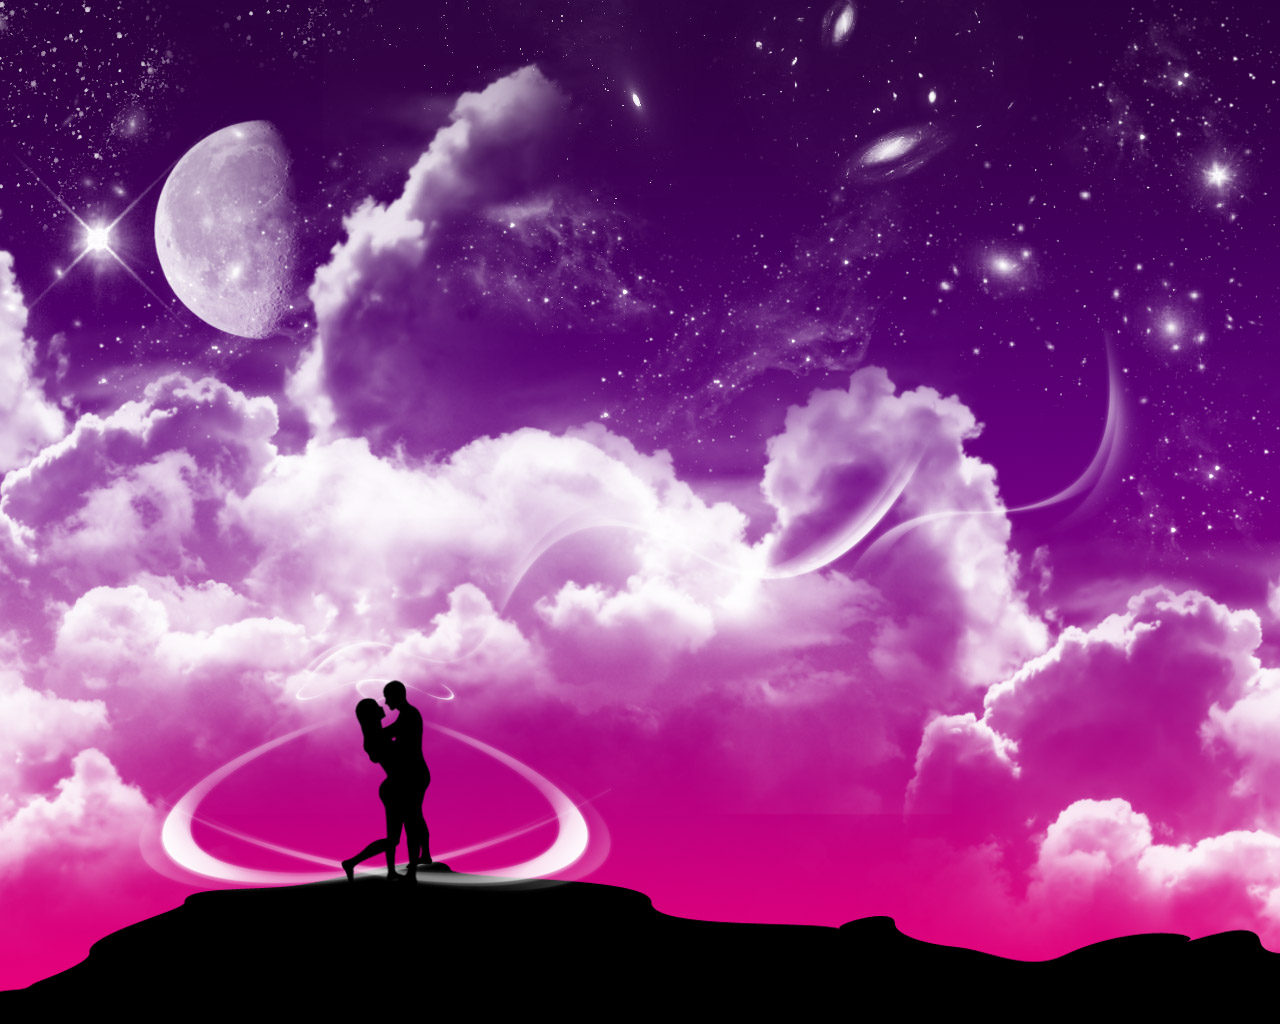 http://4.bp.blogspot.com/_ETJzgxXKrQM/TSZKUetZh1I/AAAAAAAAApo/Gz9-AUiSwNE/s1600/night-of-love-wallpapers_12263_1280x1024.jpg